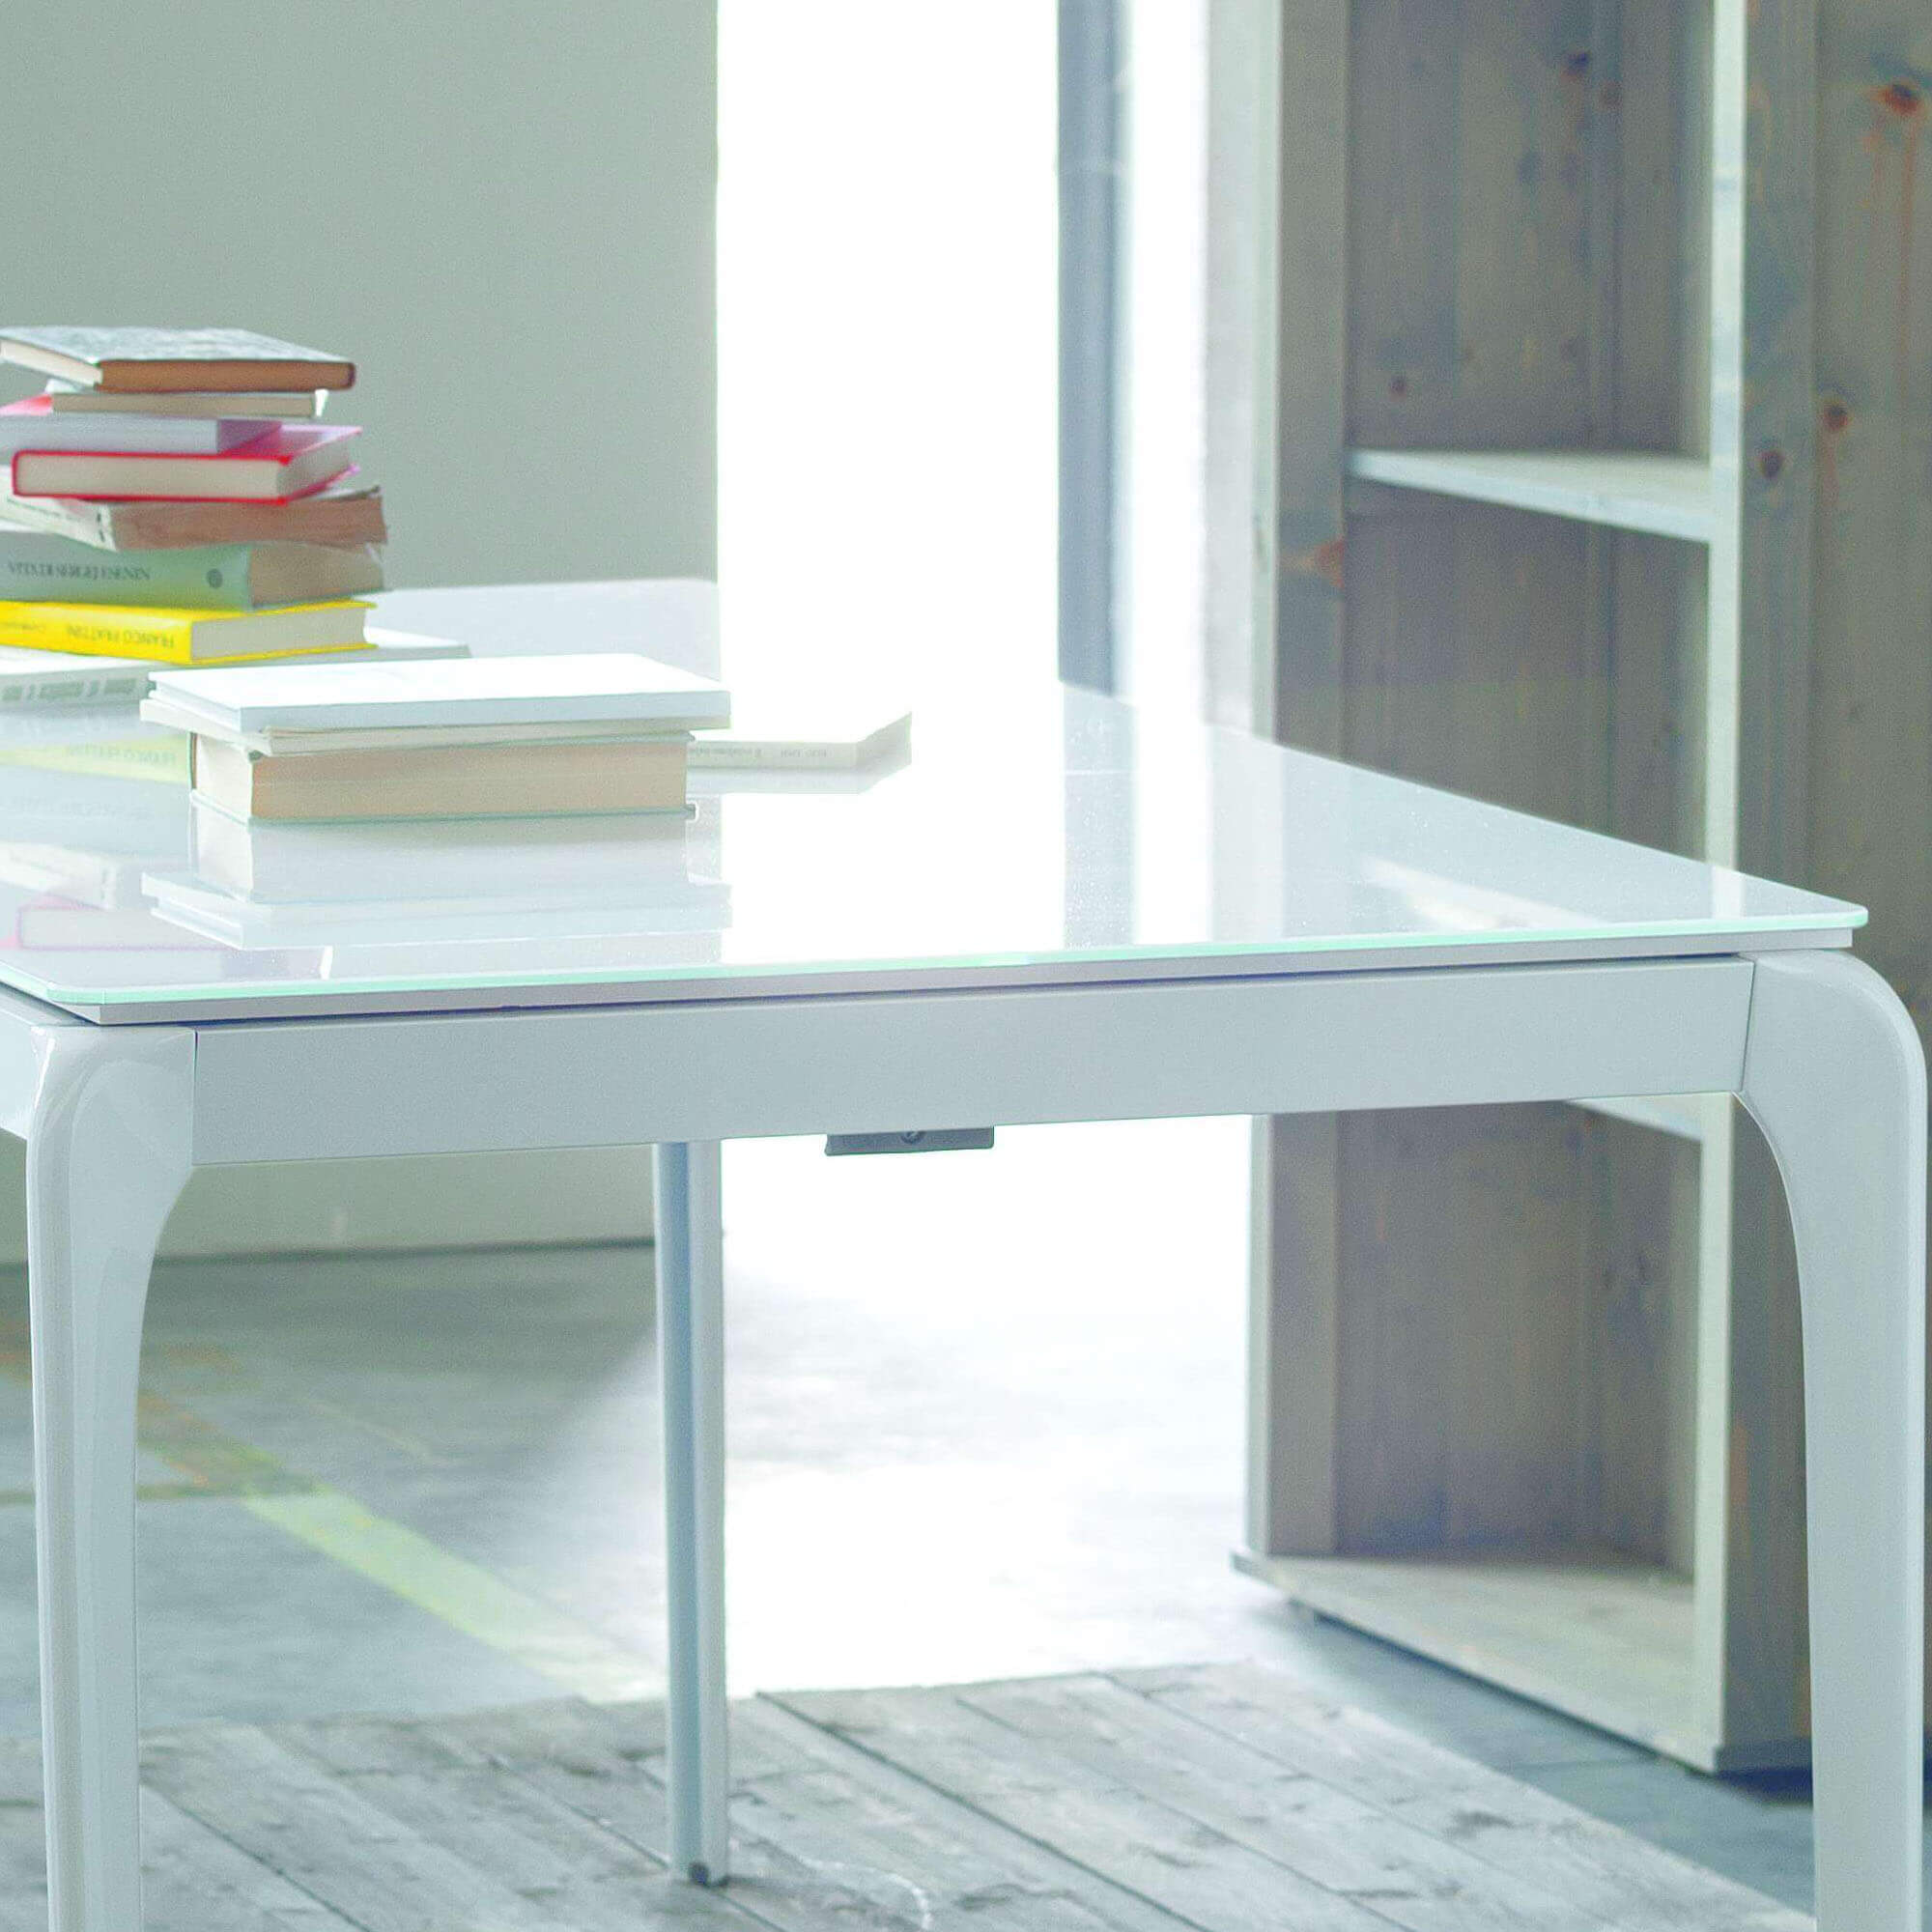 italian-furniture-contemporary-allumen-fixed-or-extendable-glass-top-table-by-sedit-1